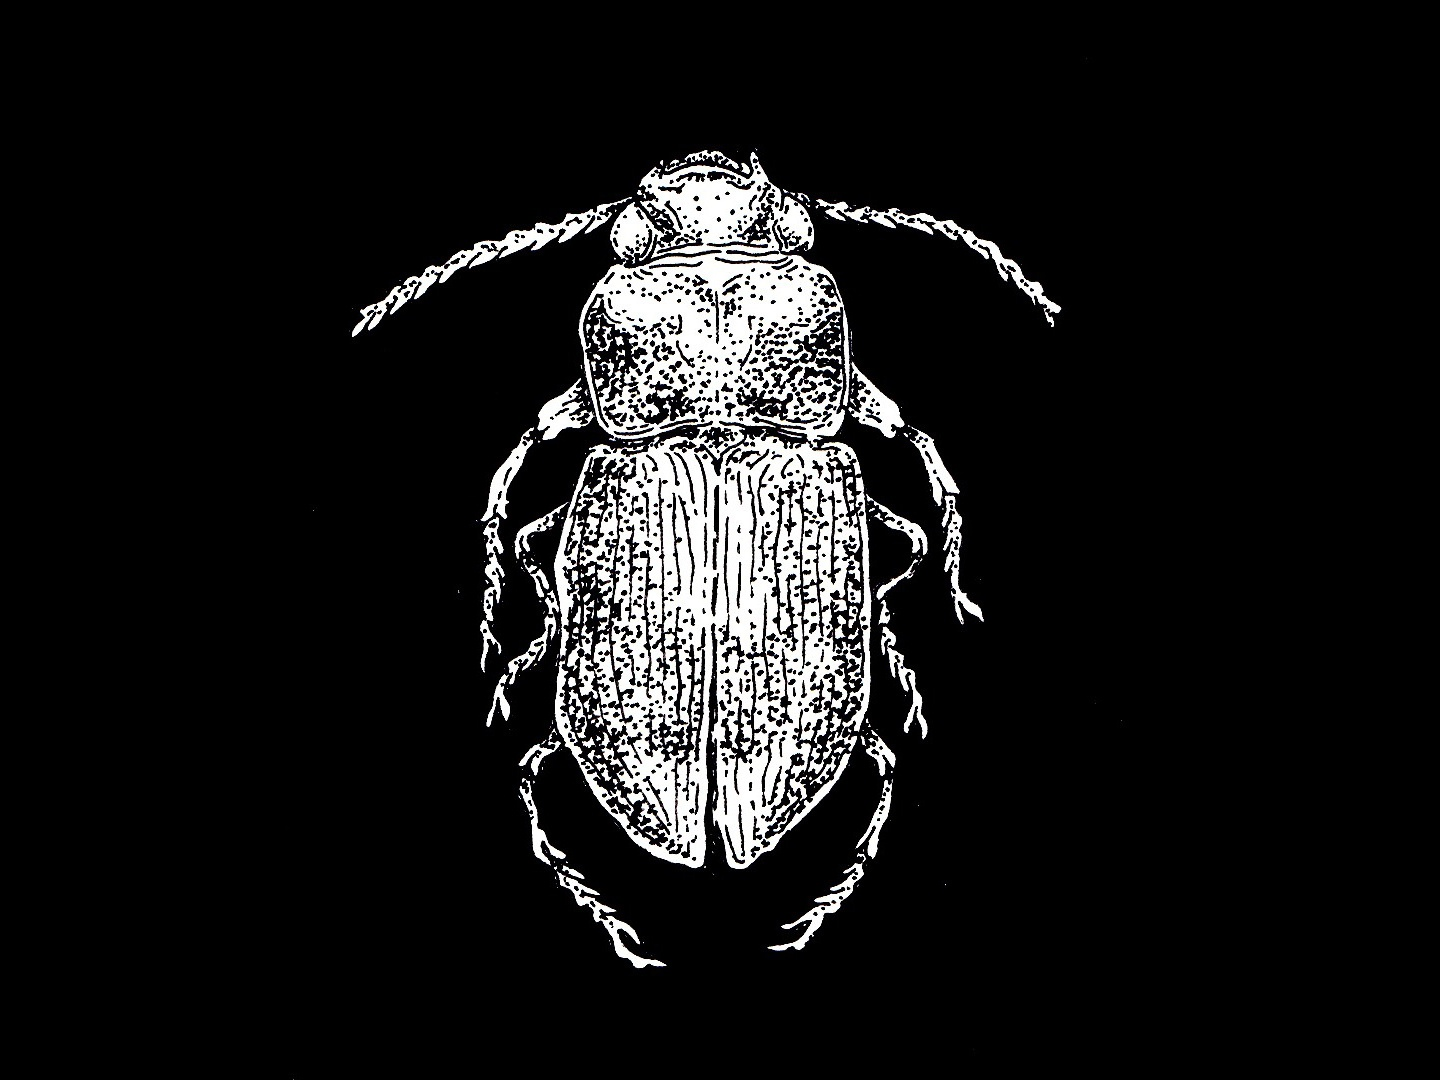 dung beetle illustration illustration art director design black and white black white dung beetle beetle insects dotted dotwork linear linear illustration insect ink illustration inktober ink traditional illustration traditional art traditional illustration